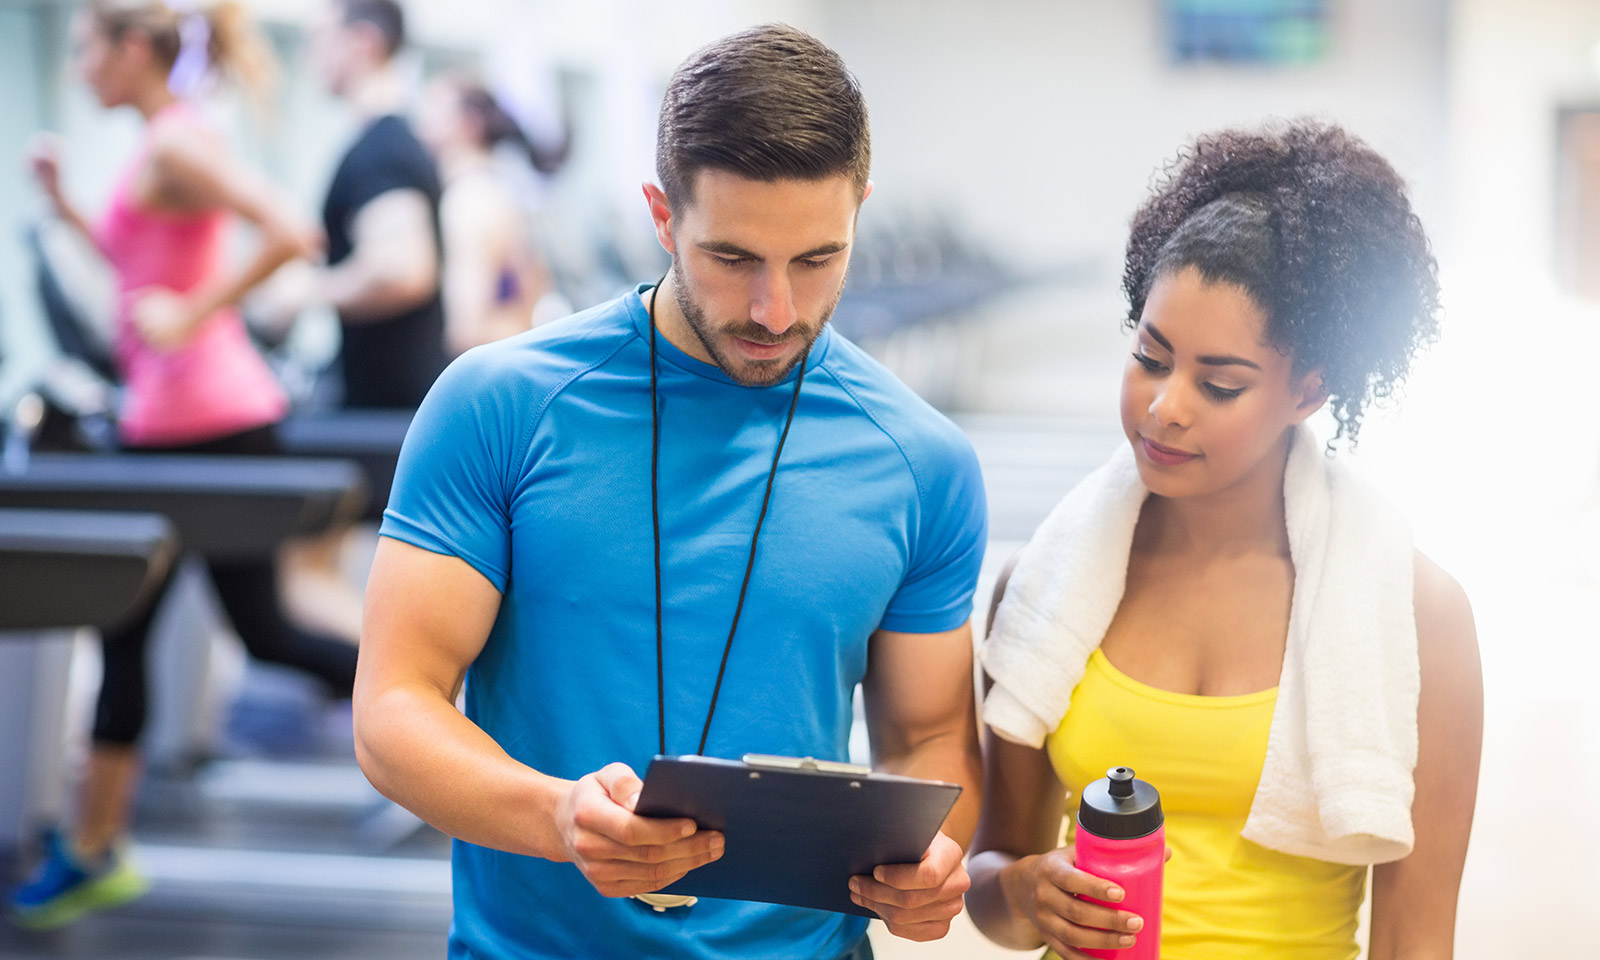 Qualities-to-look-for-in-a-personal-trainer